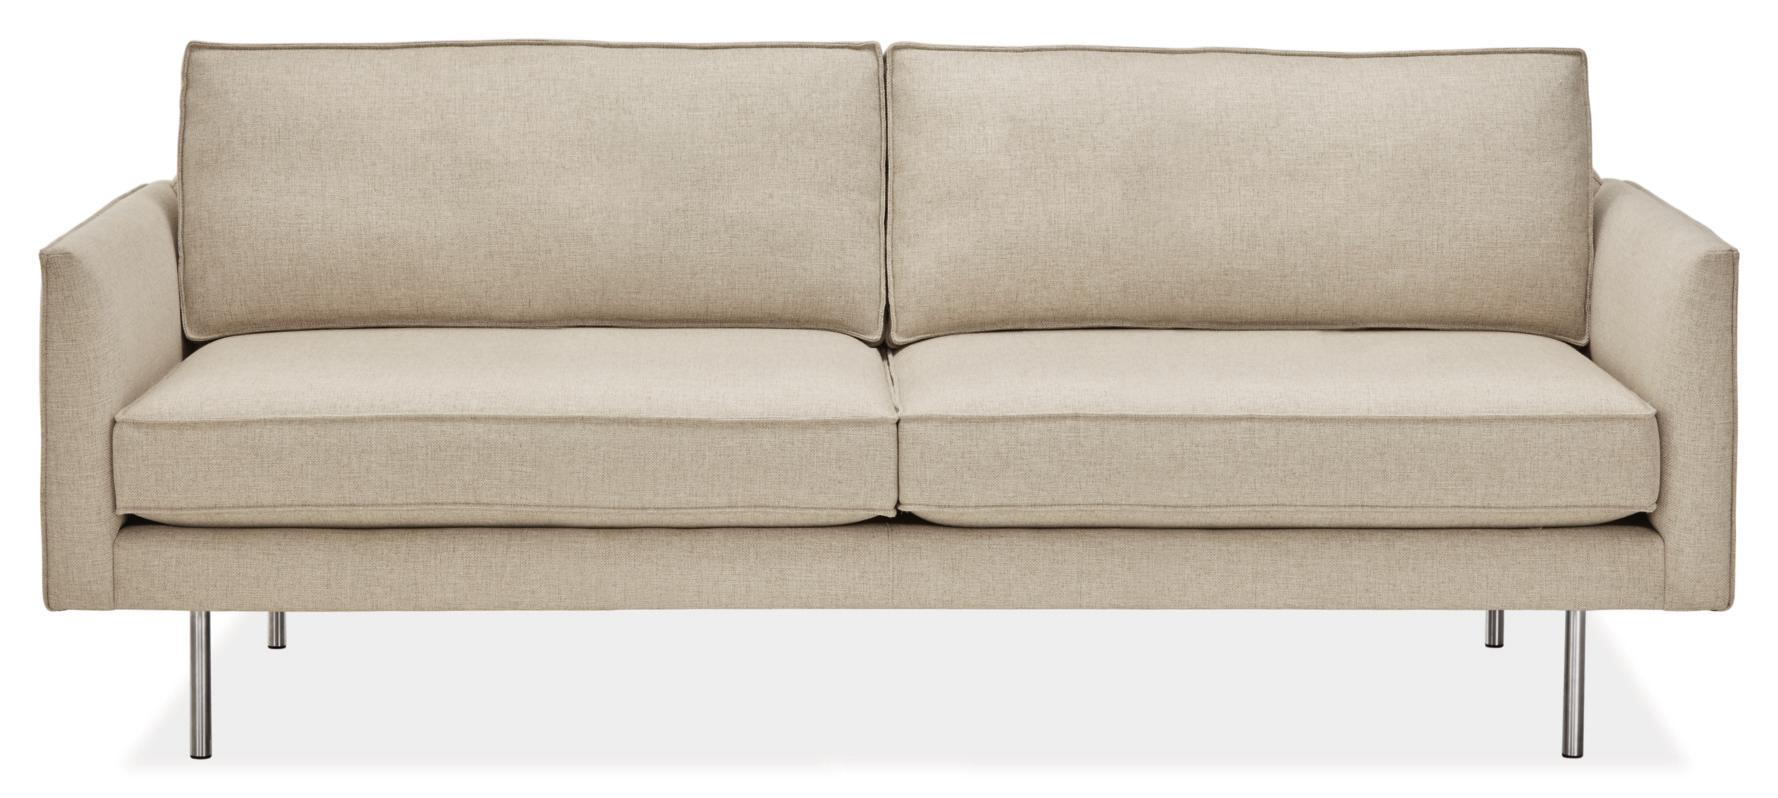 This couch is discontinued, so this weekend will be your last chance to get it! It normally retails for $1,999.{ } (Image courtesy of Room & Board){ }